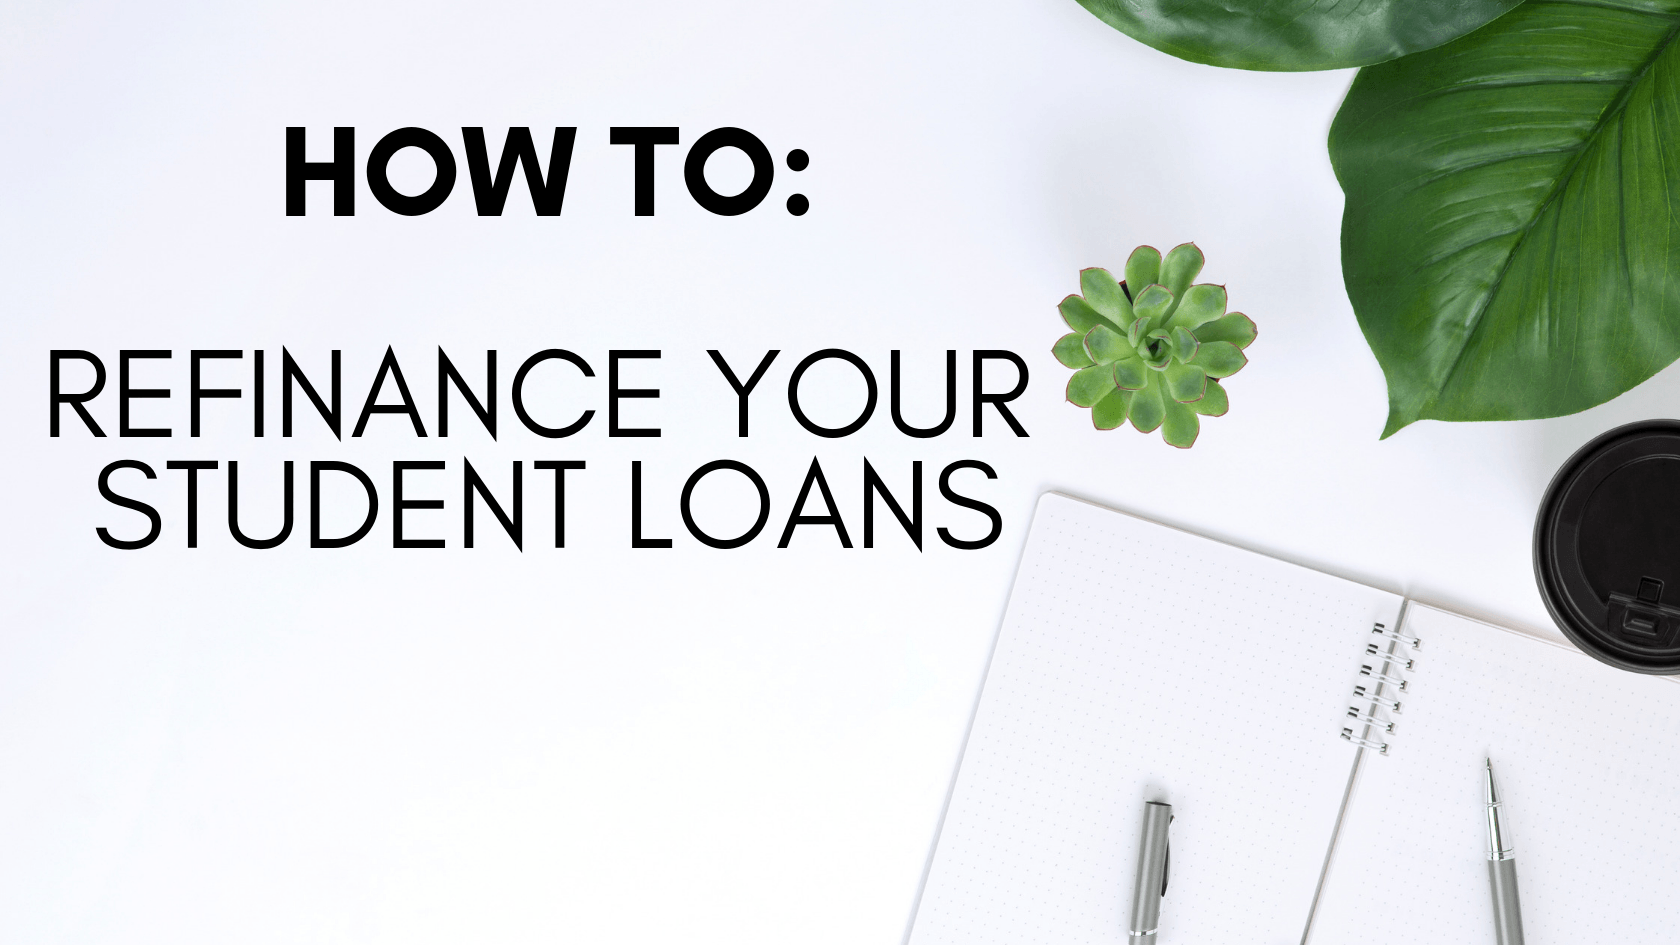 Refinance Student Loans >> How To Refinance Student Loans Is It A Good Idea Loan Guides